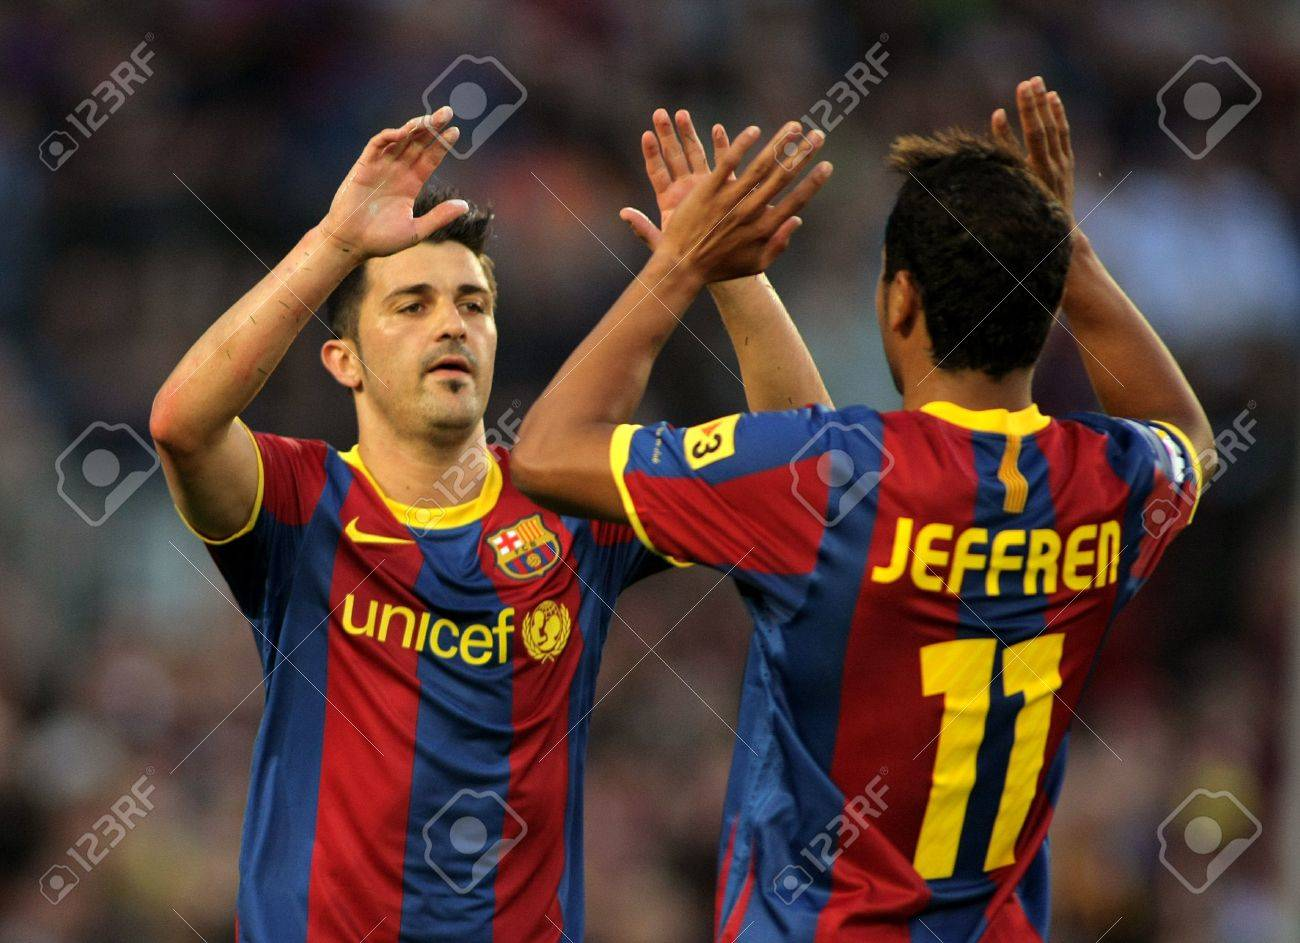 Villa and Jeffren of Barcelona celebrating goal  during the match between FC Barcelona and Osasuna at the Nou Camp Stadium on April 23, 2011 in Barcelona, Spain Stock Photo - 9684216